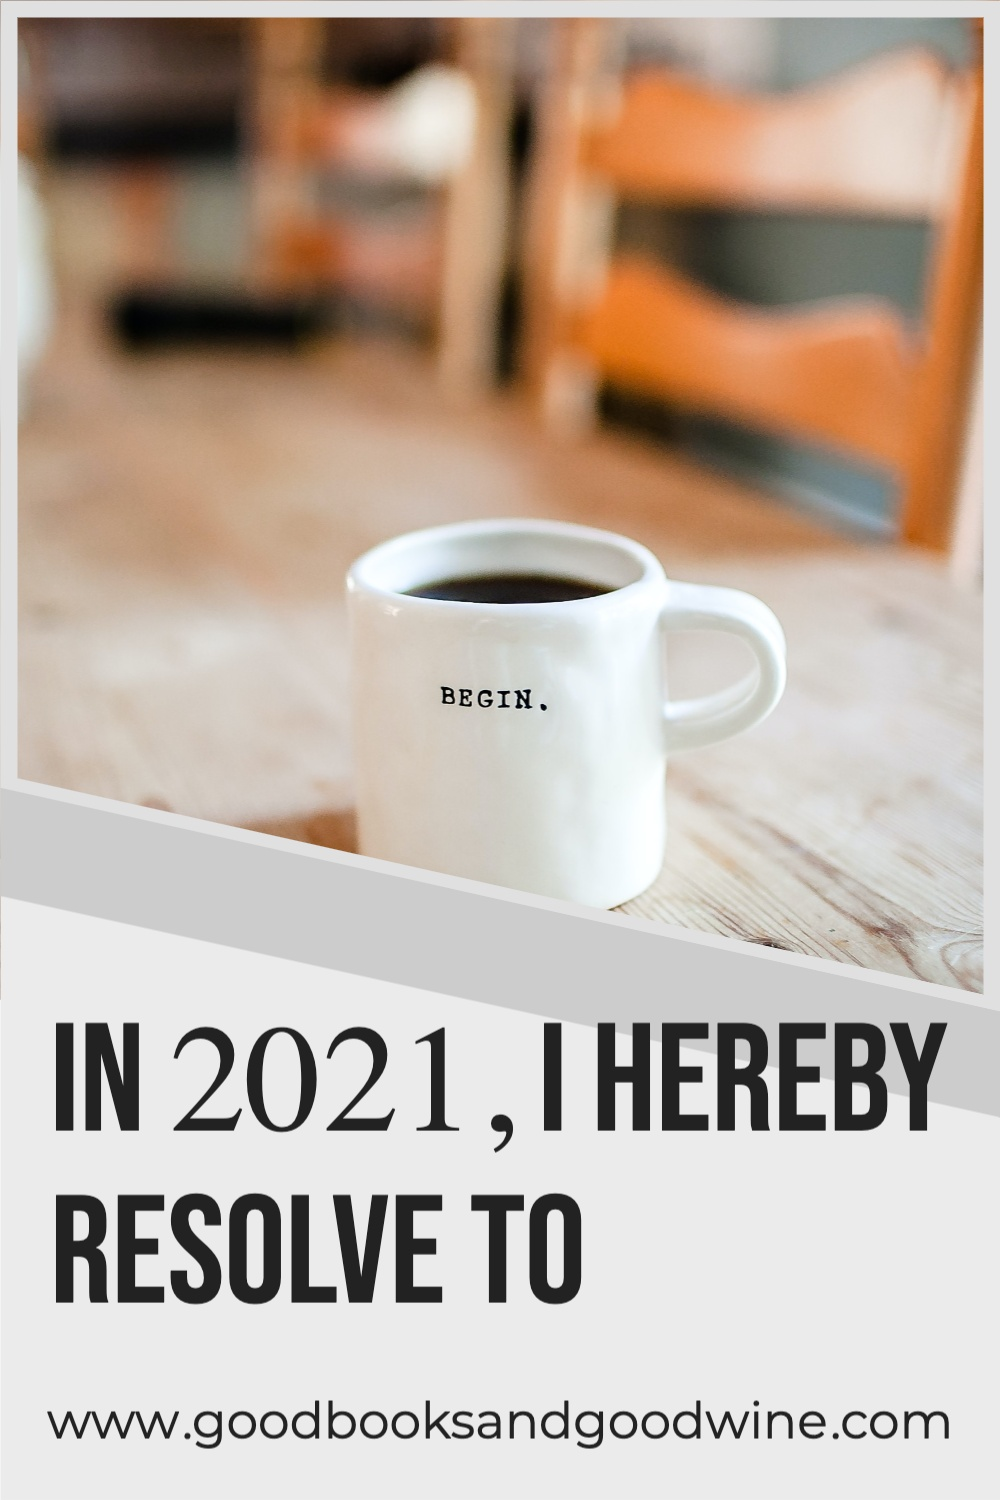 Check out my resolutions for 2021 - from bookish resolutions to fitness and more.